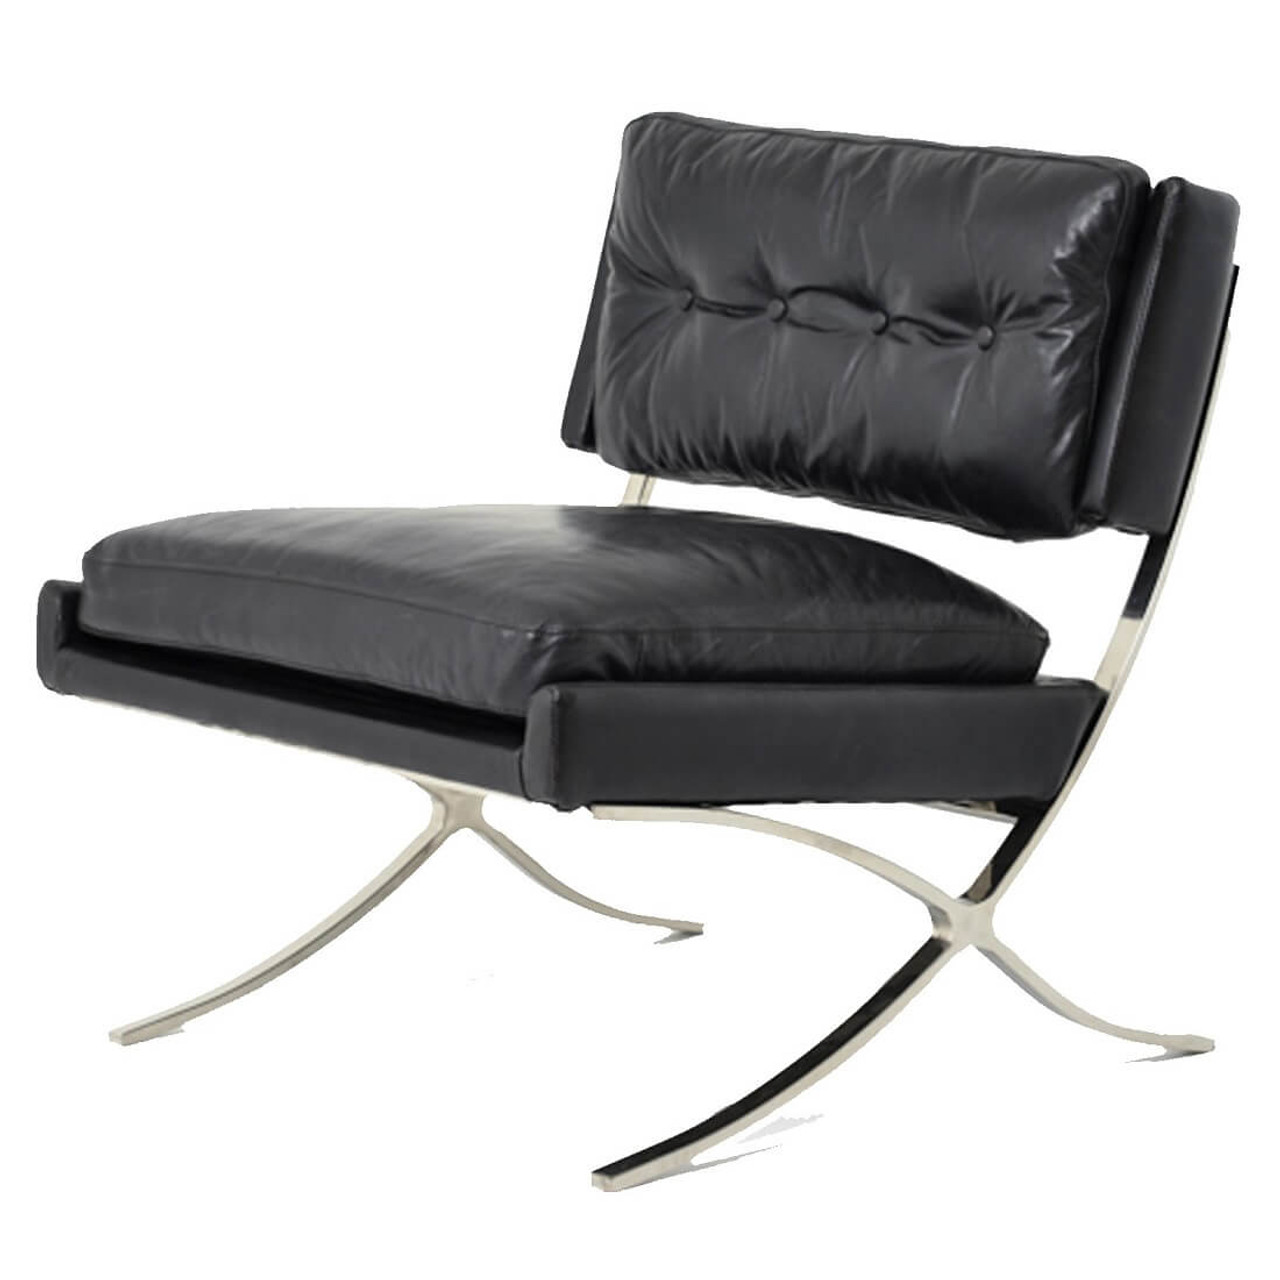 Ordinaire Heathrow Vintage Black Leather Lounge Chair